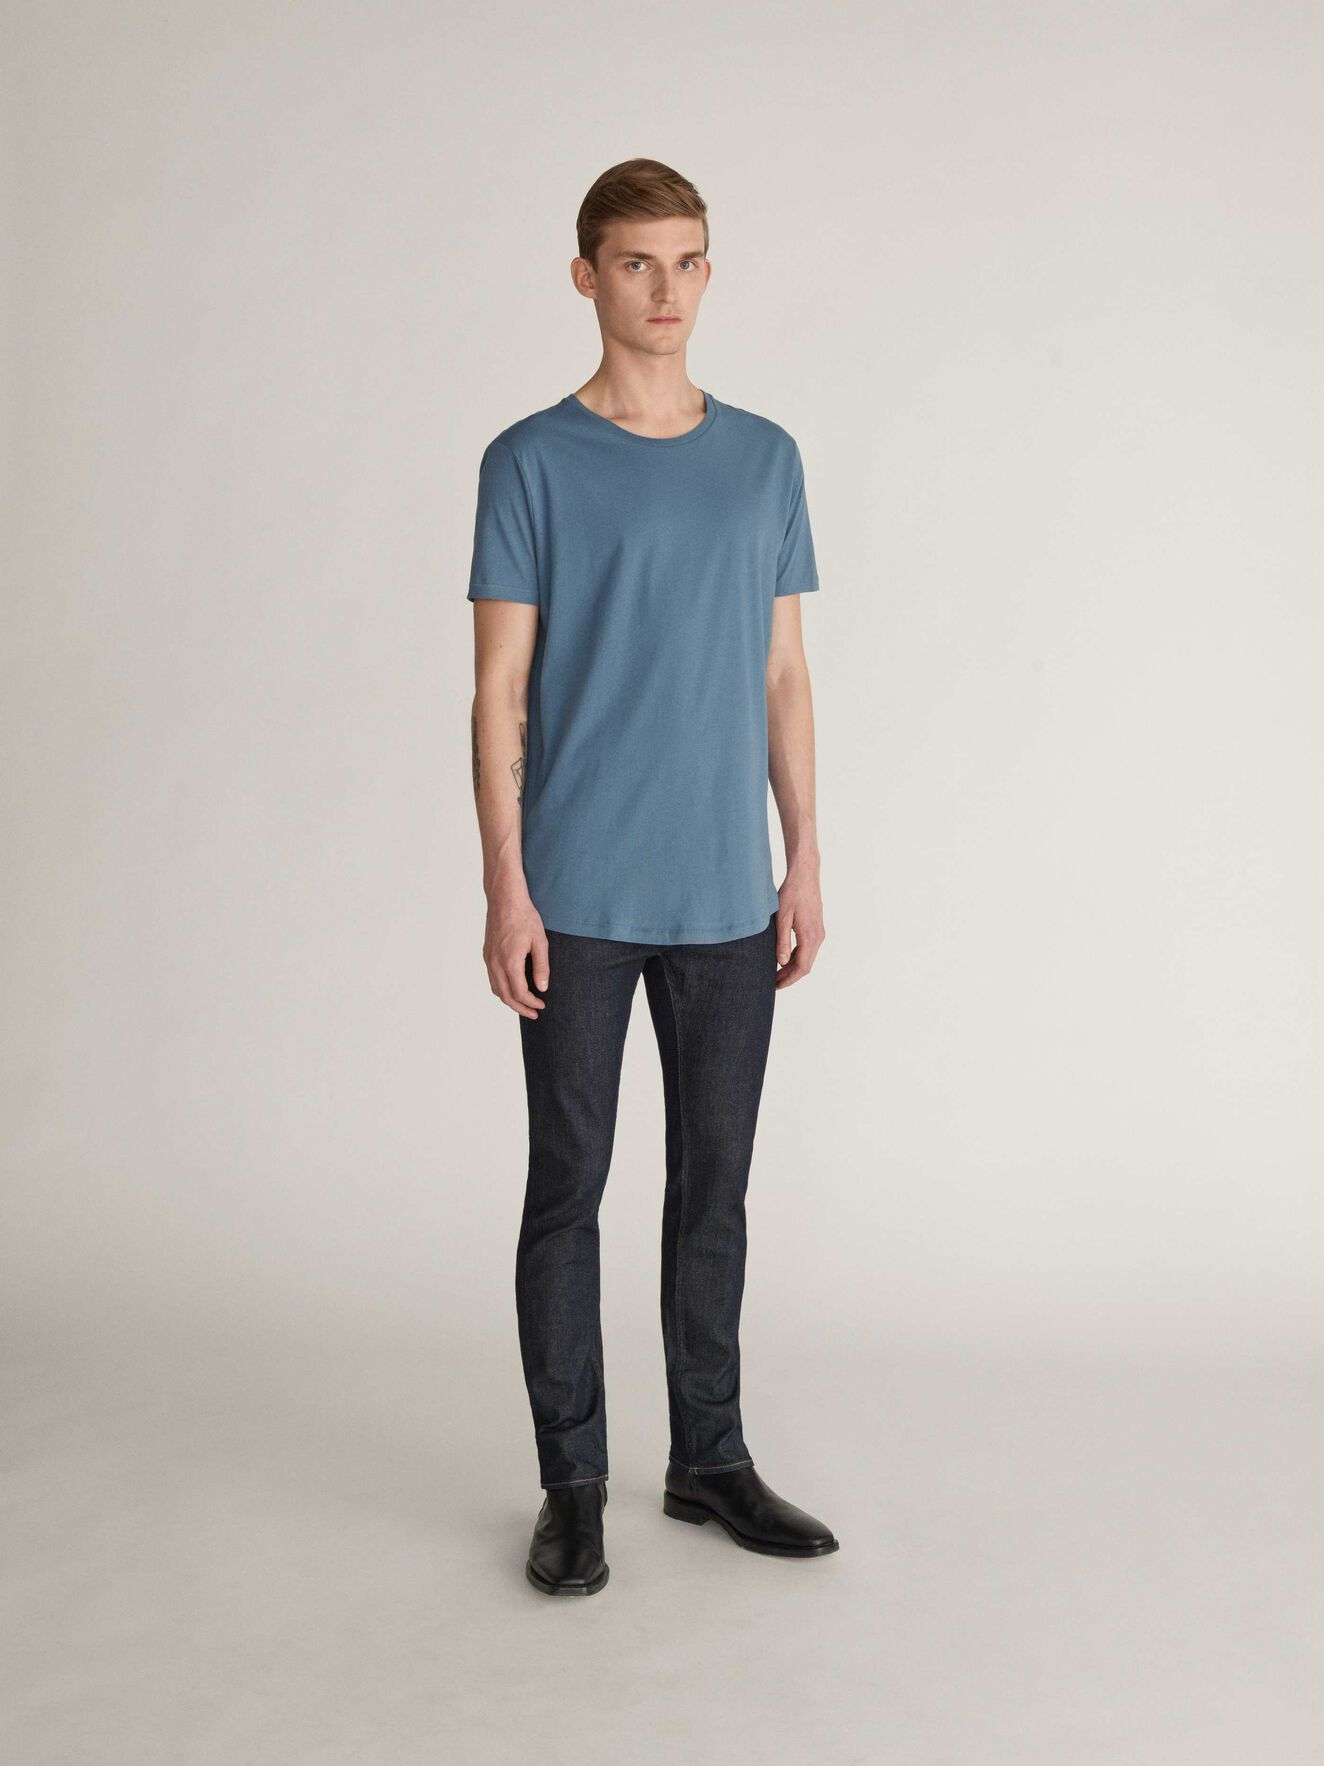 Corey Kurzarm-T-Shirt in Mist Blue from Tiger of Sweden